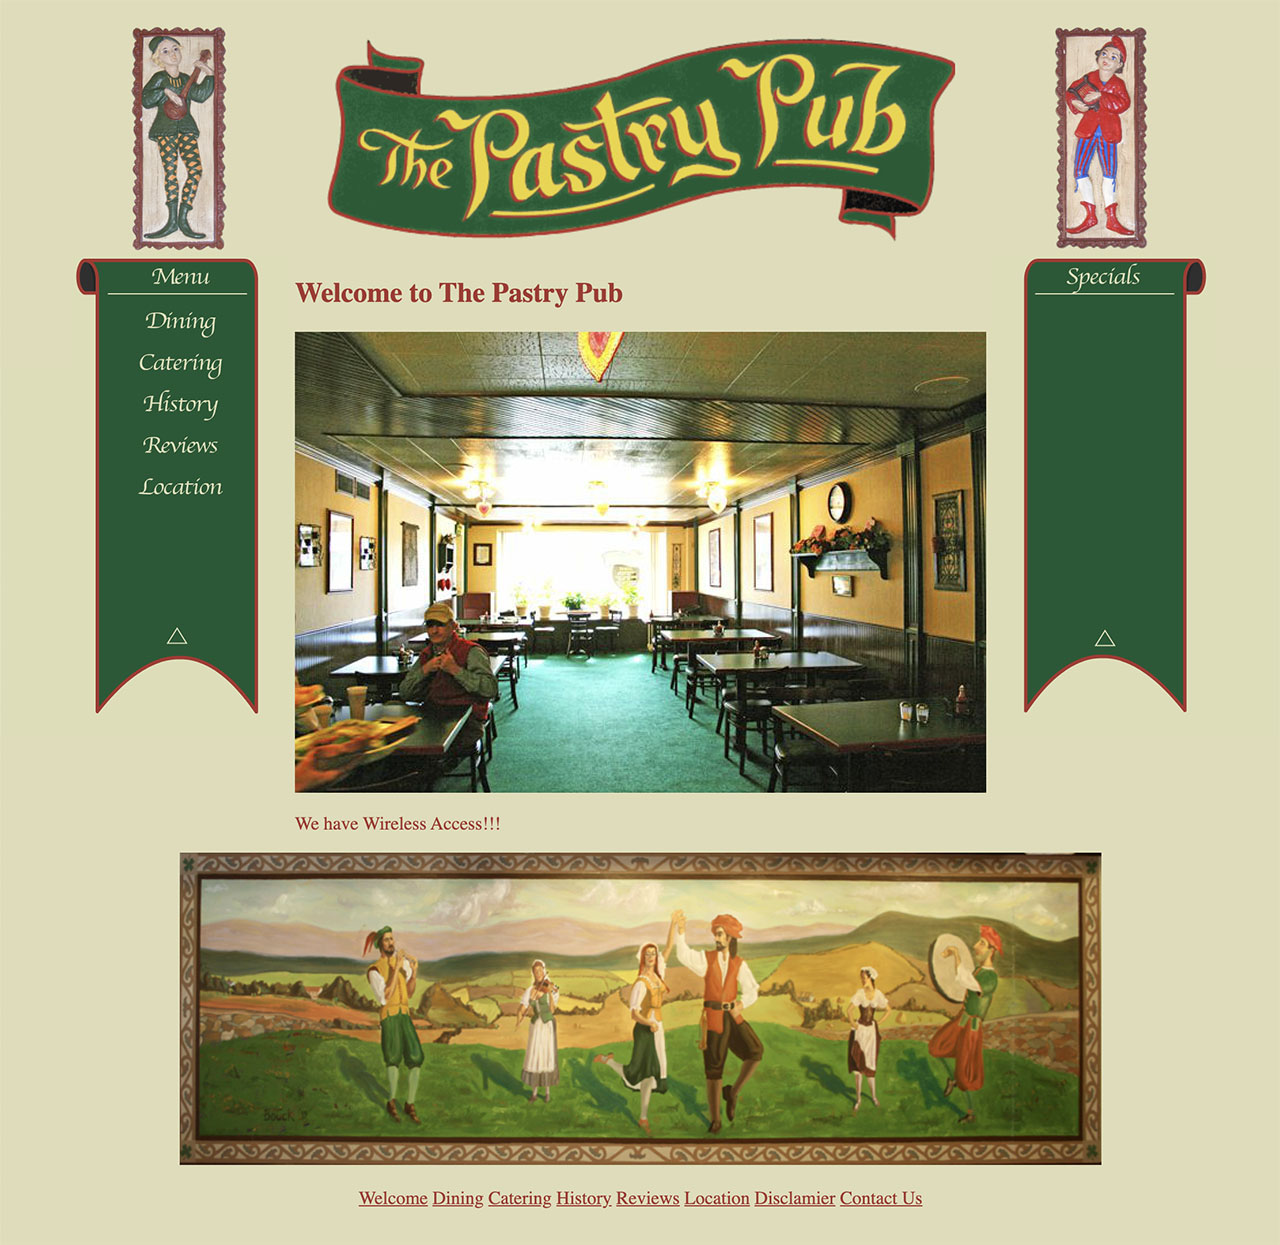 The Pastry Pub website